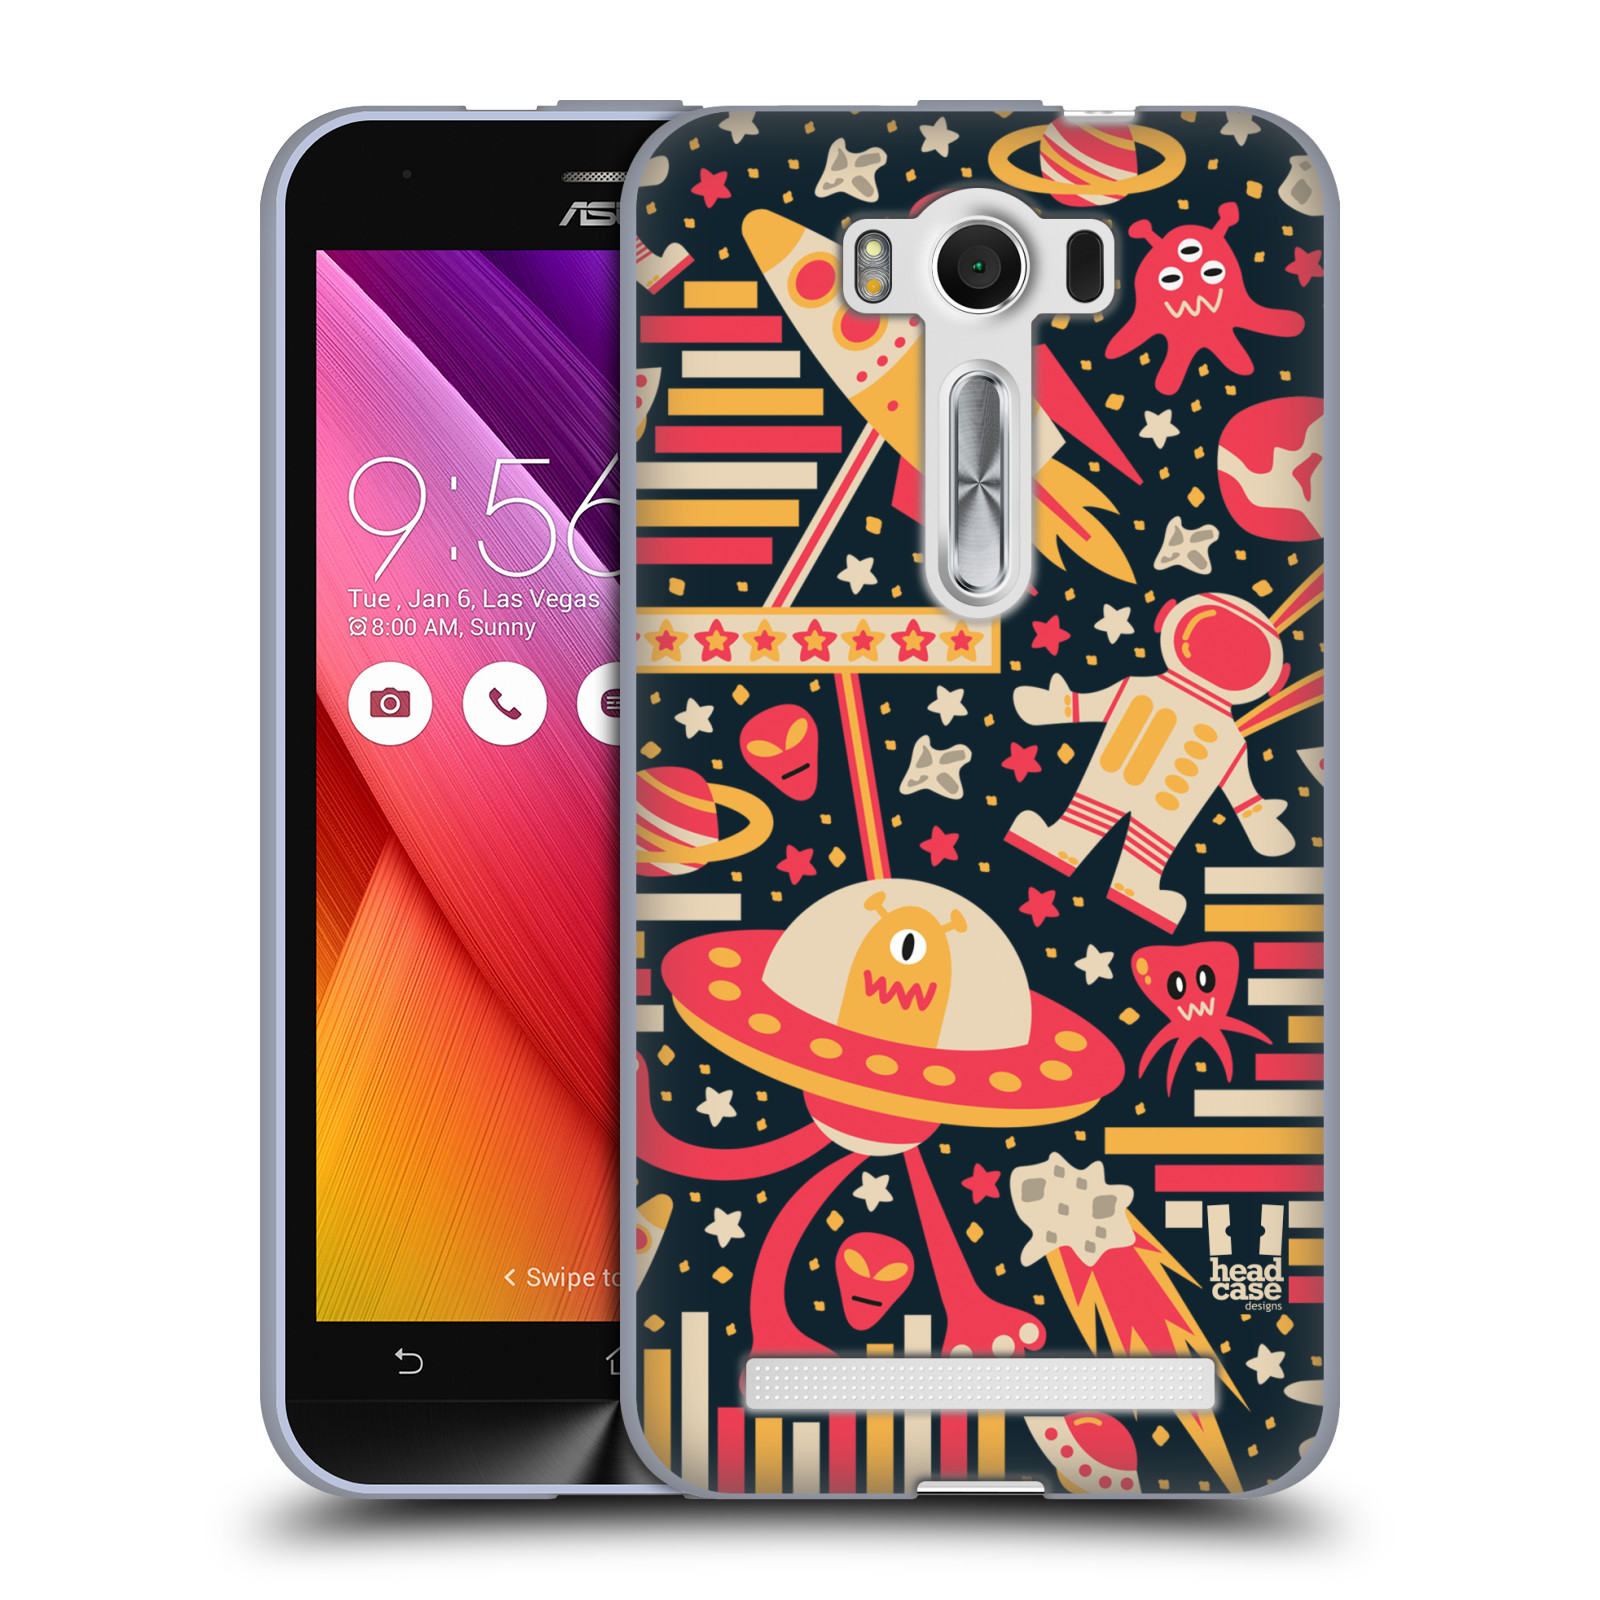 HEAD-CASE-DESIGNS-COPIES-DE-MELI-MELO-ETUI-COQUE-EN-GEL-POUR-AMAZON-ASUS-ONEPLUS